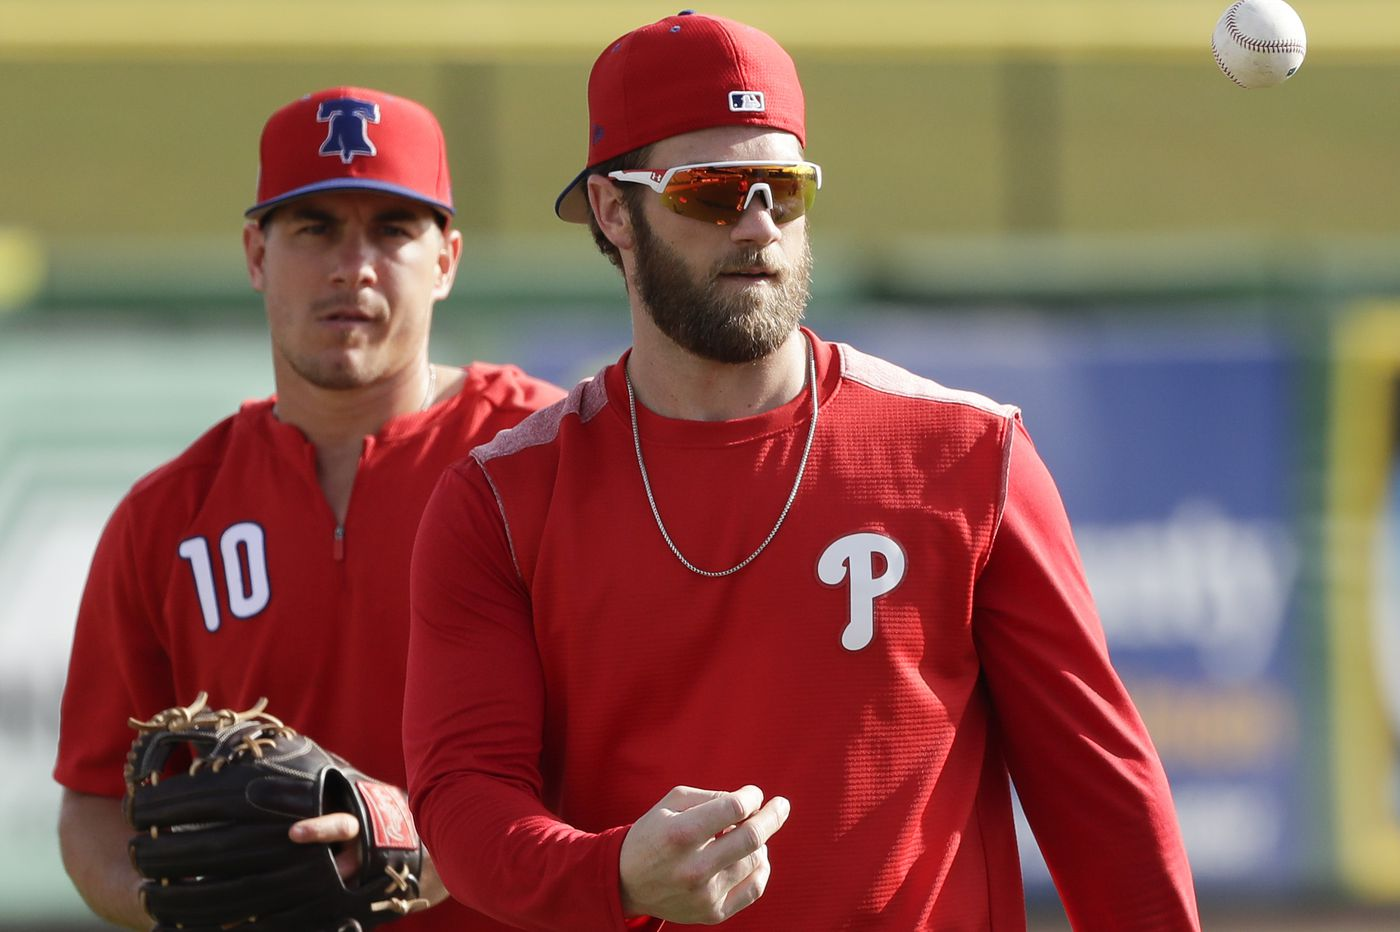 Phillies podcast: Mailbag time, Bryce Harper's defense, how many wins to make the playoffs?